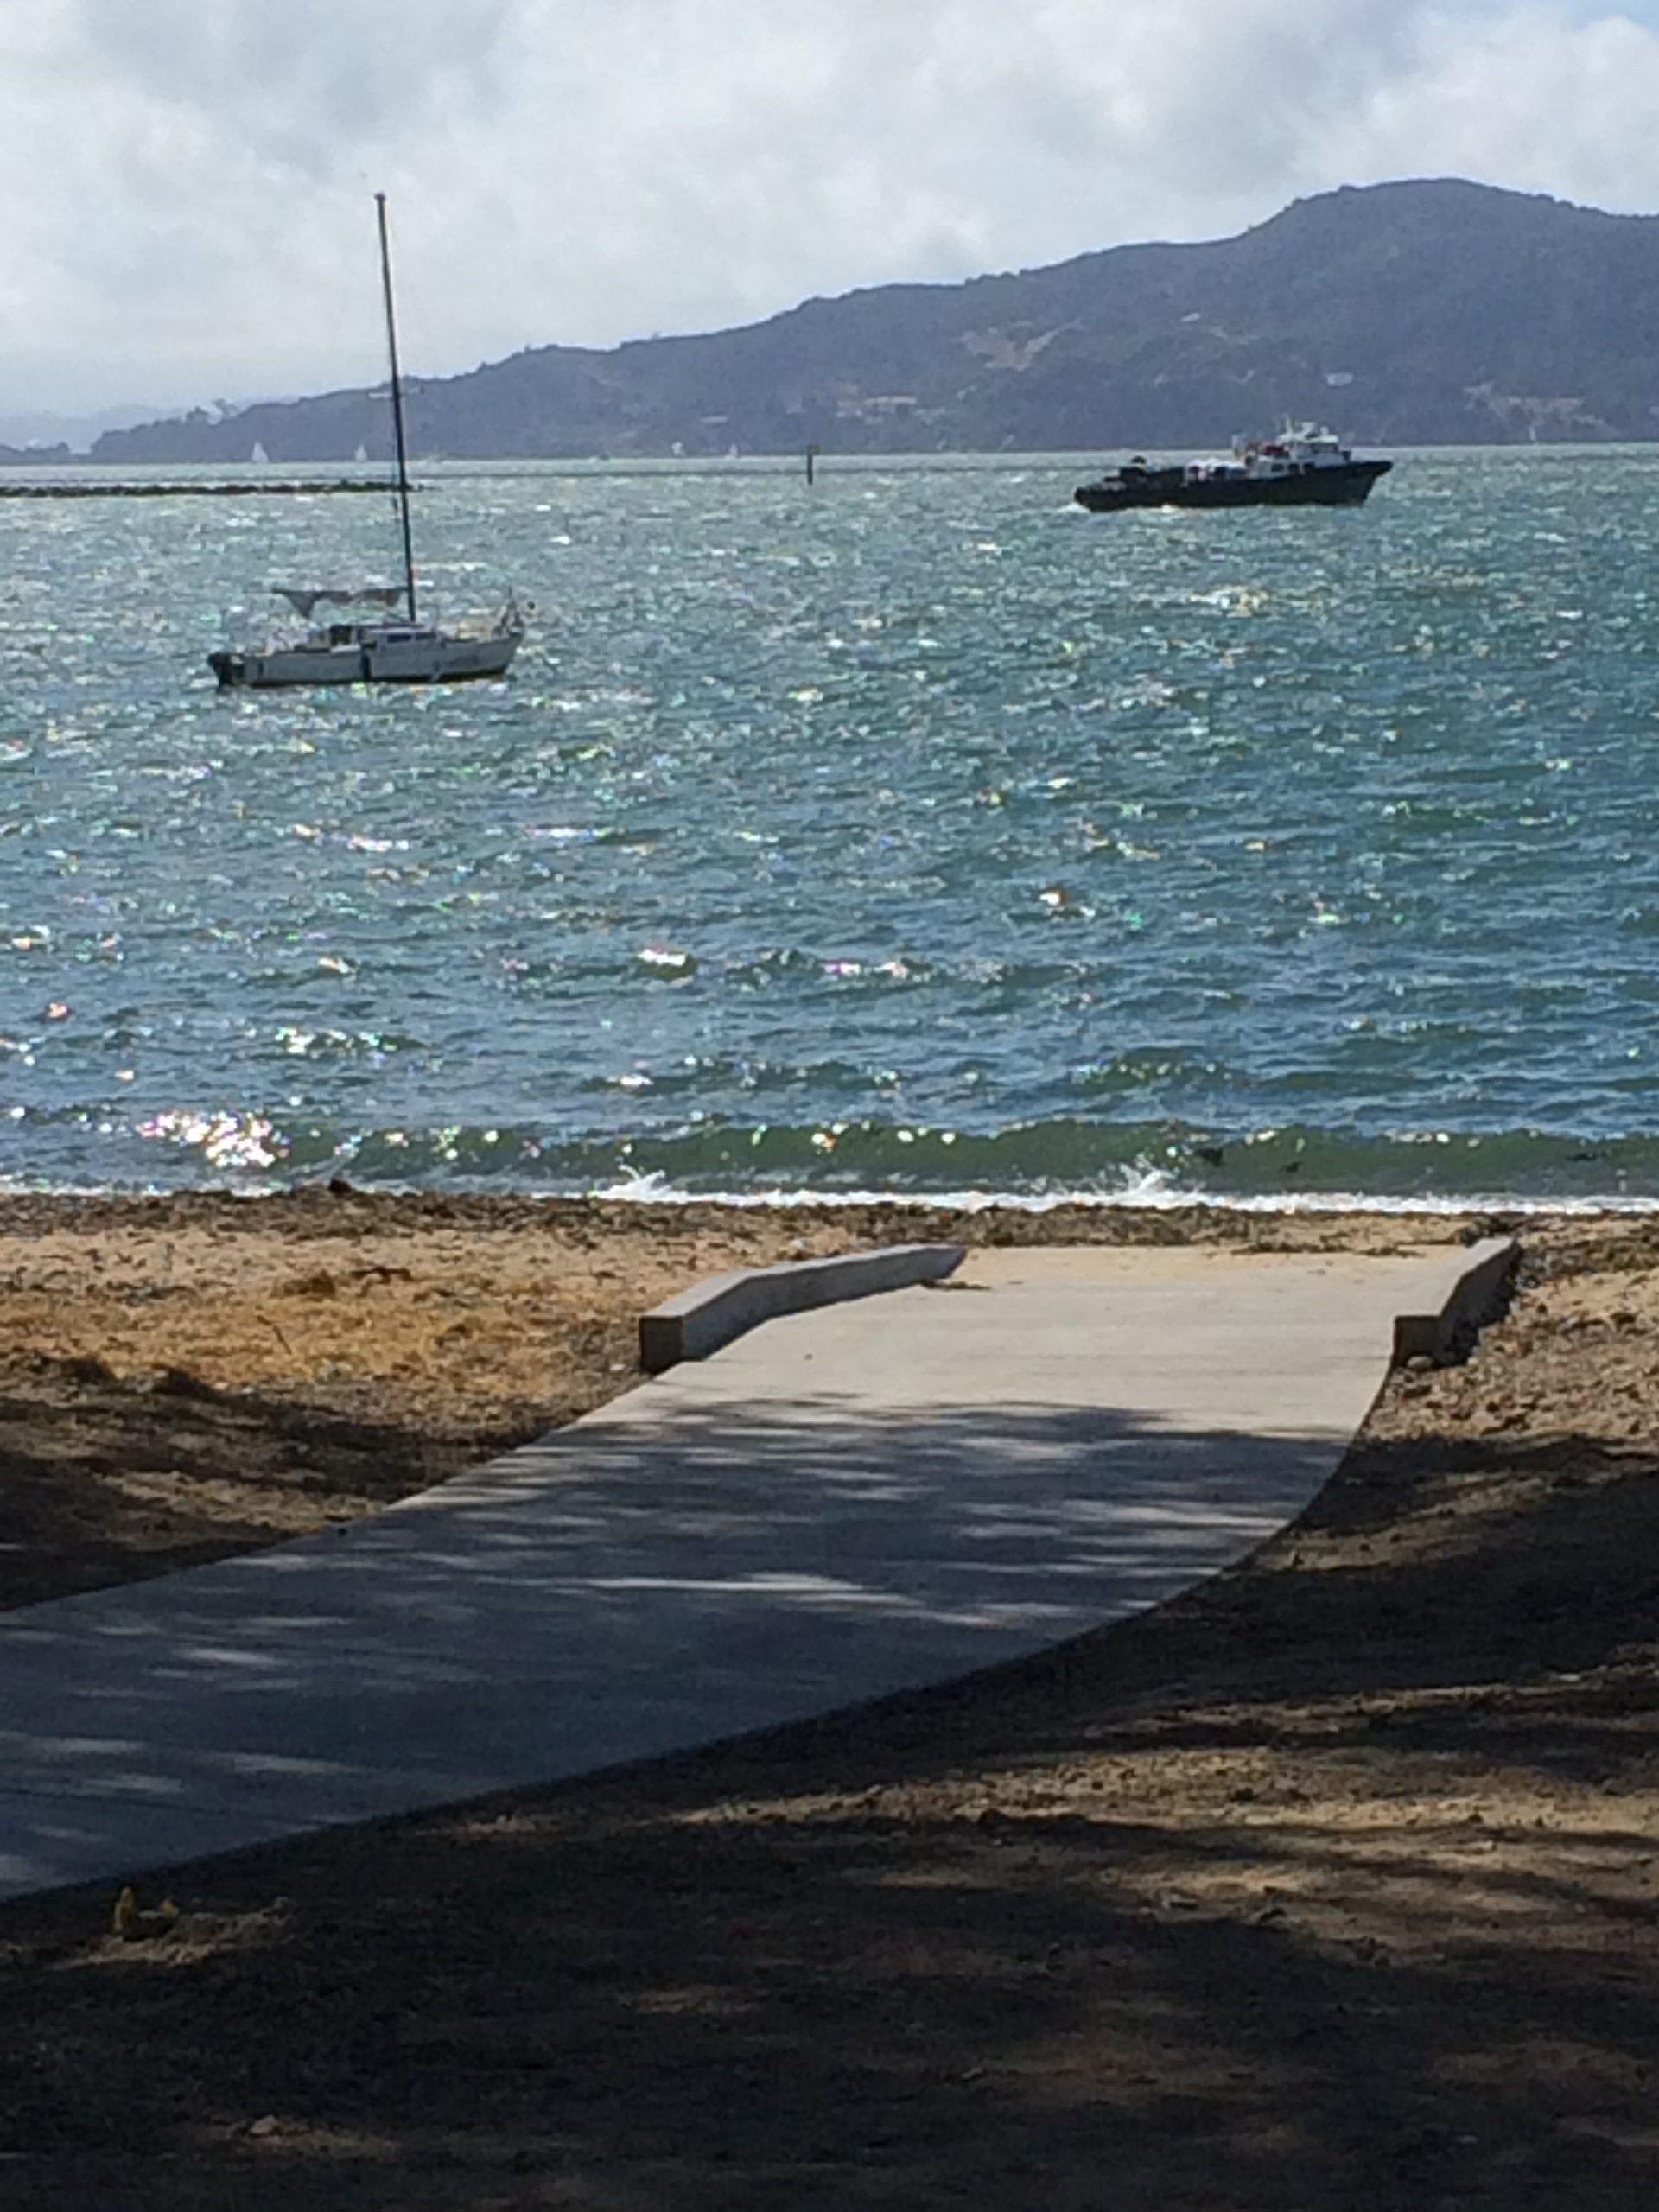 Concrete path curving to sandy beach and bay, sailboat and large ship in distance